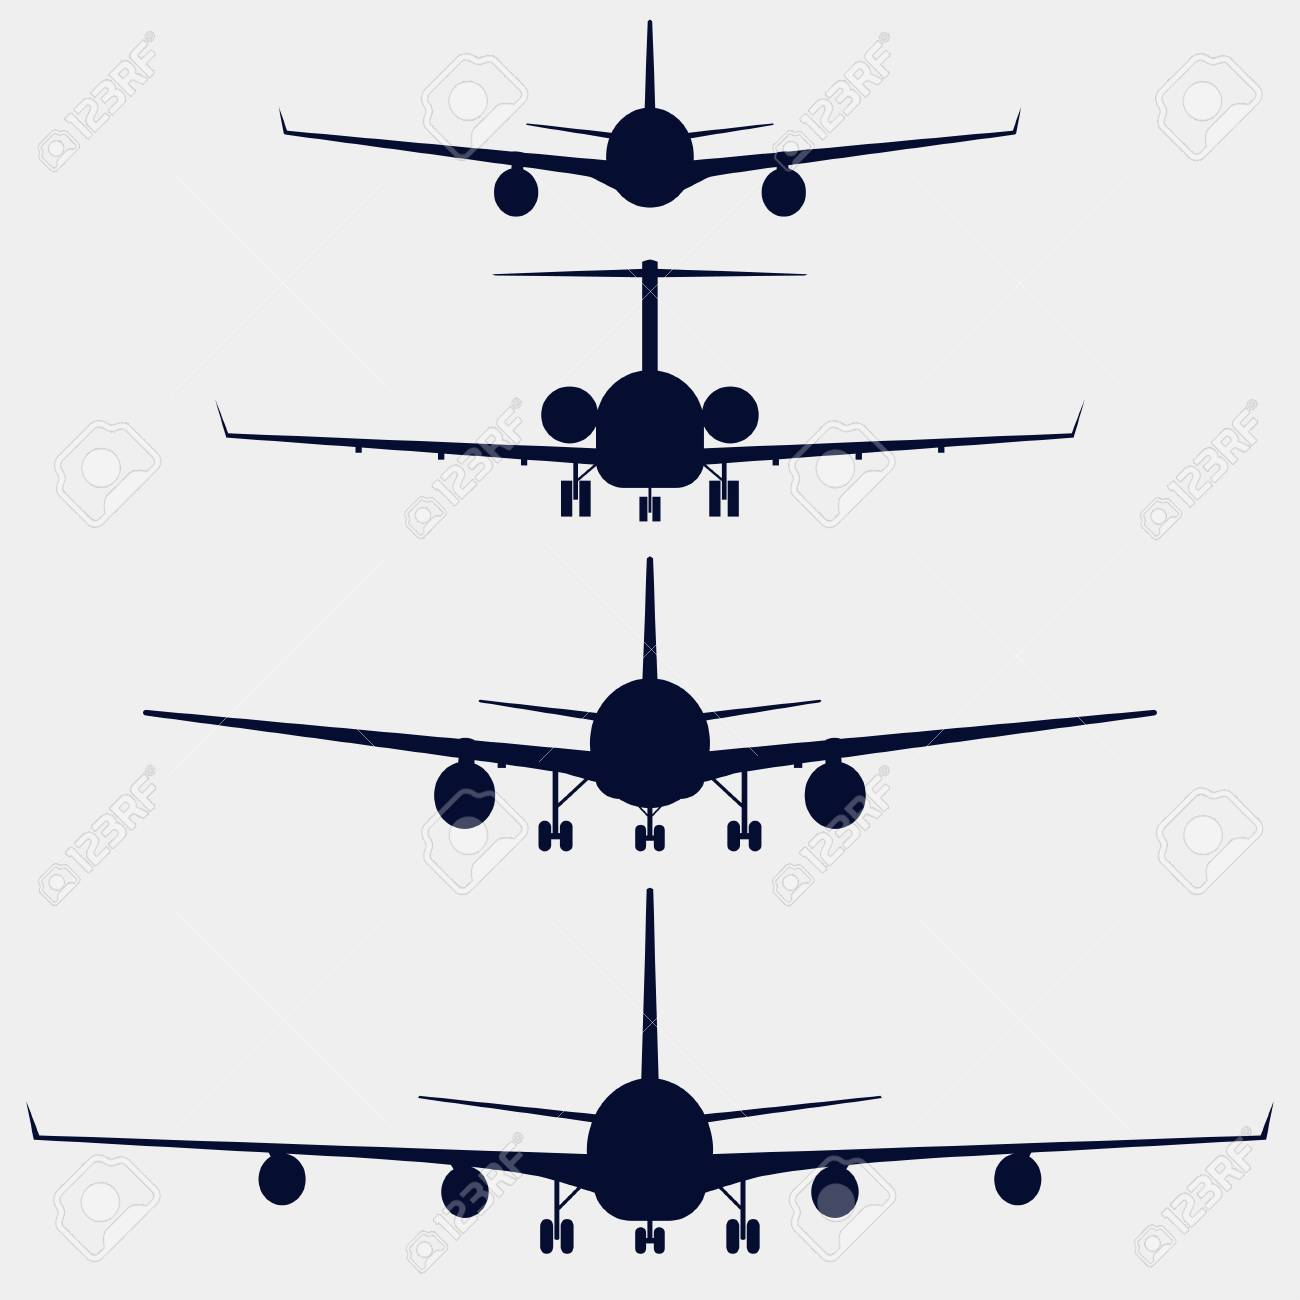 Airplanes silhouette front view, jet aircraft, plane - 60398592